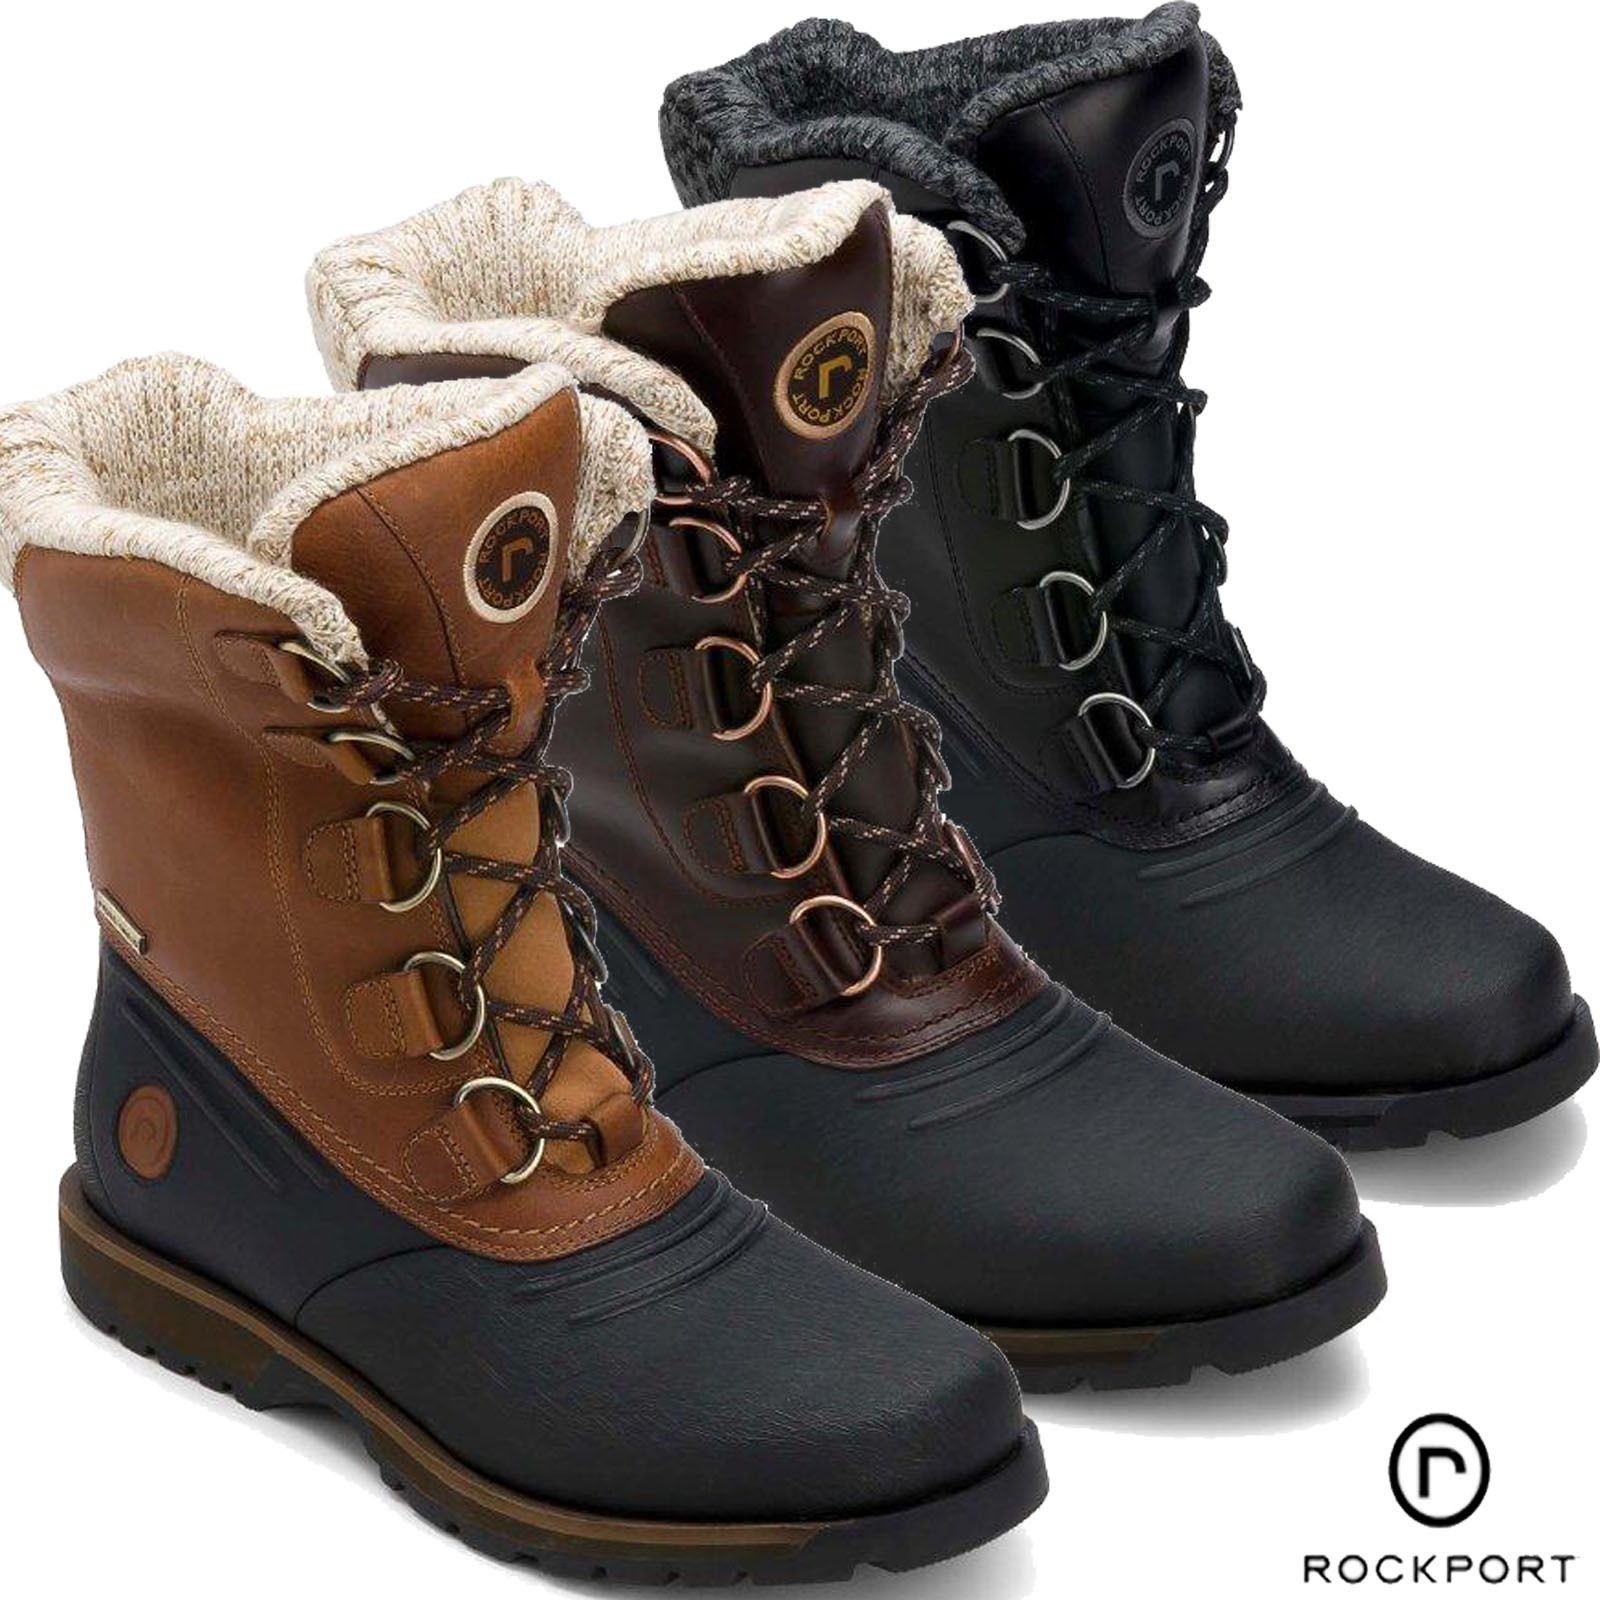 Winter Boots Mens 5UPXqQ0b